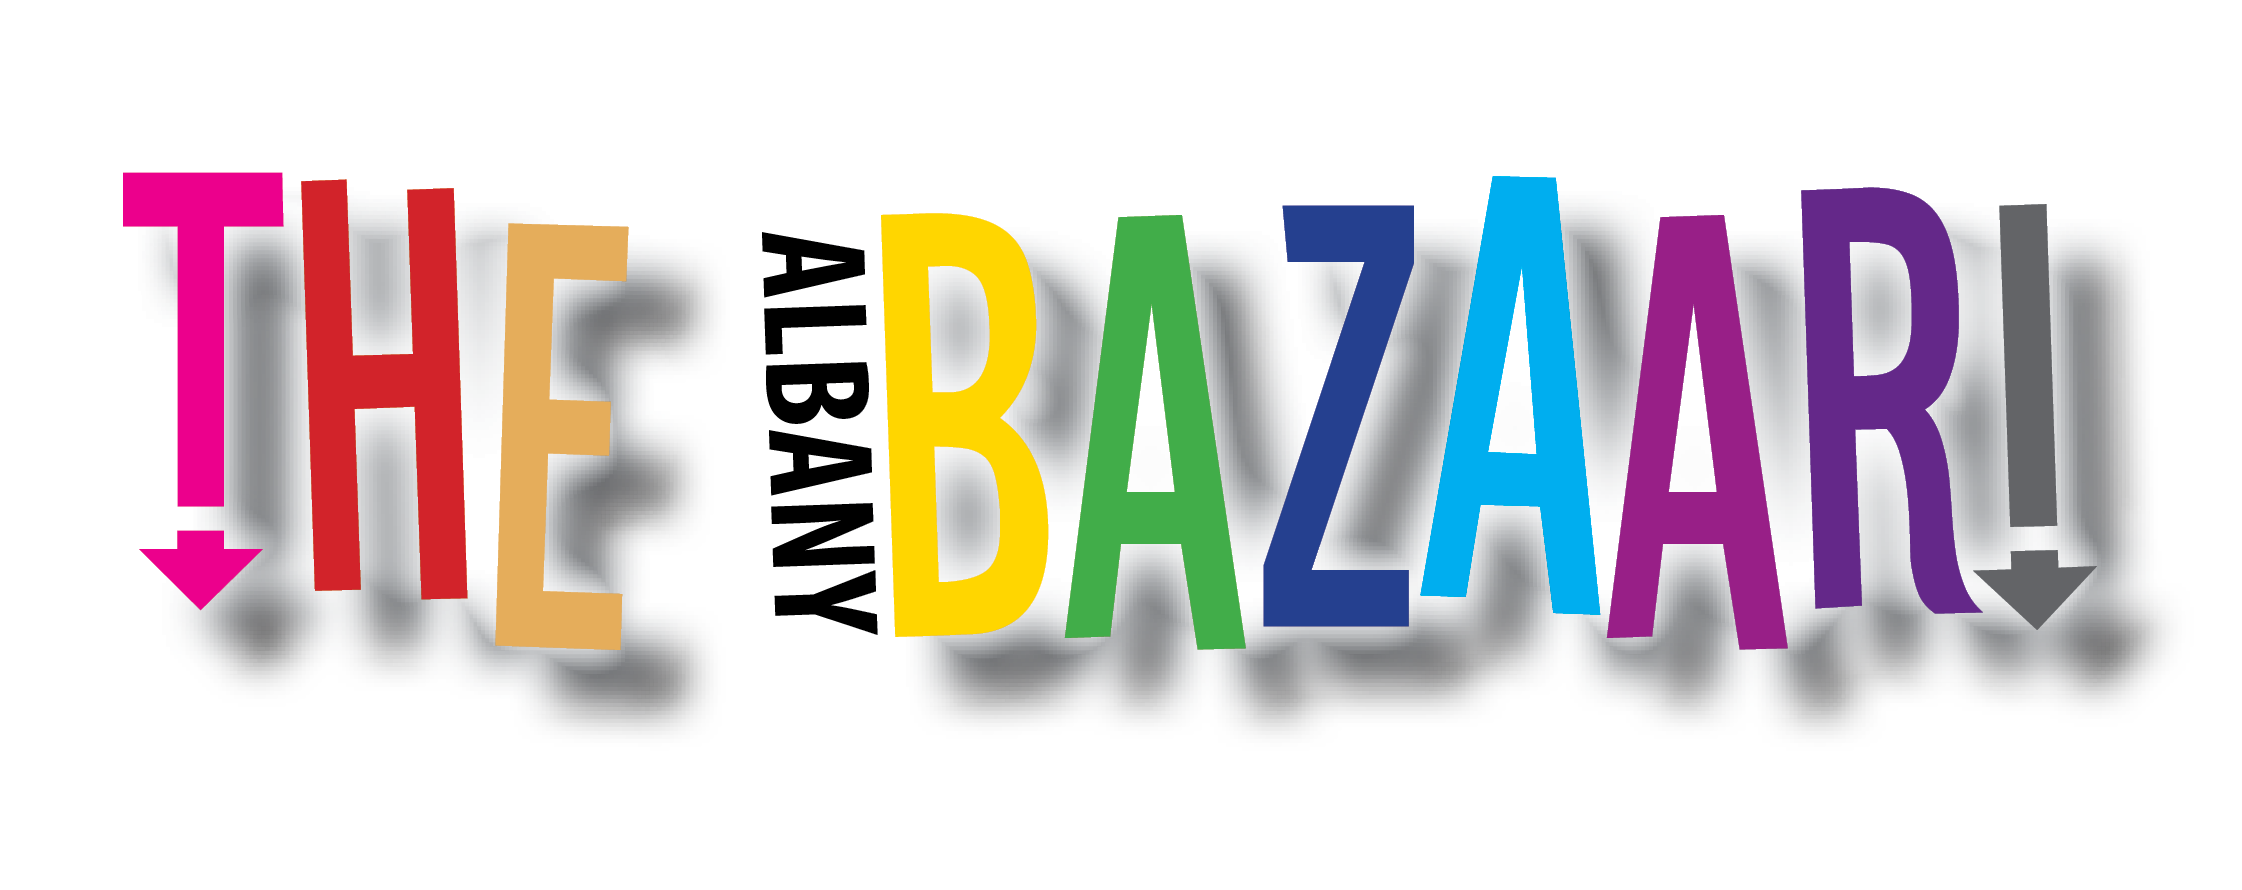 The Albany Bazaar